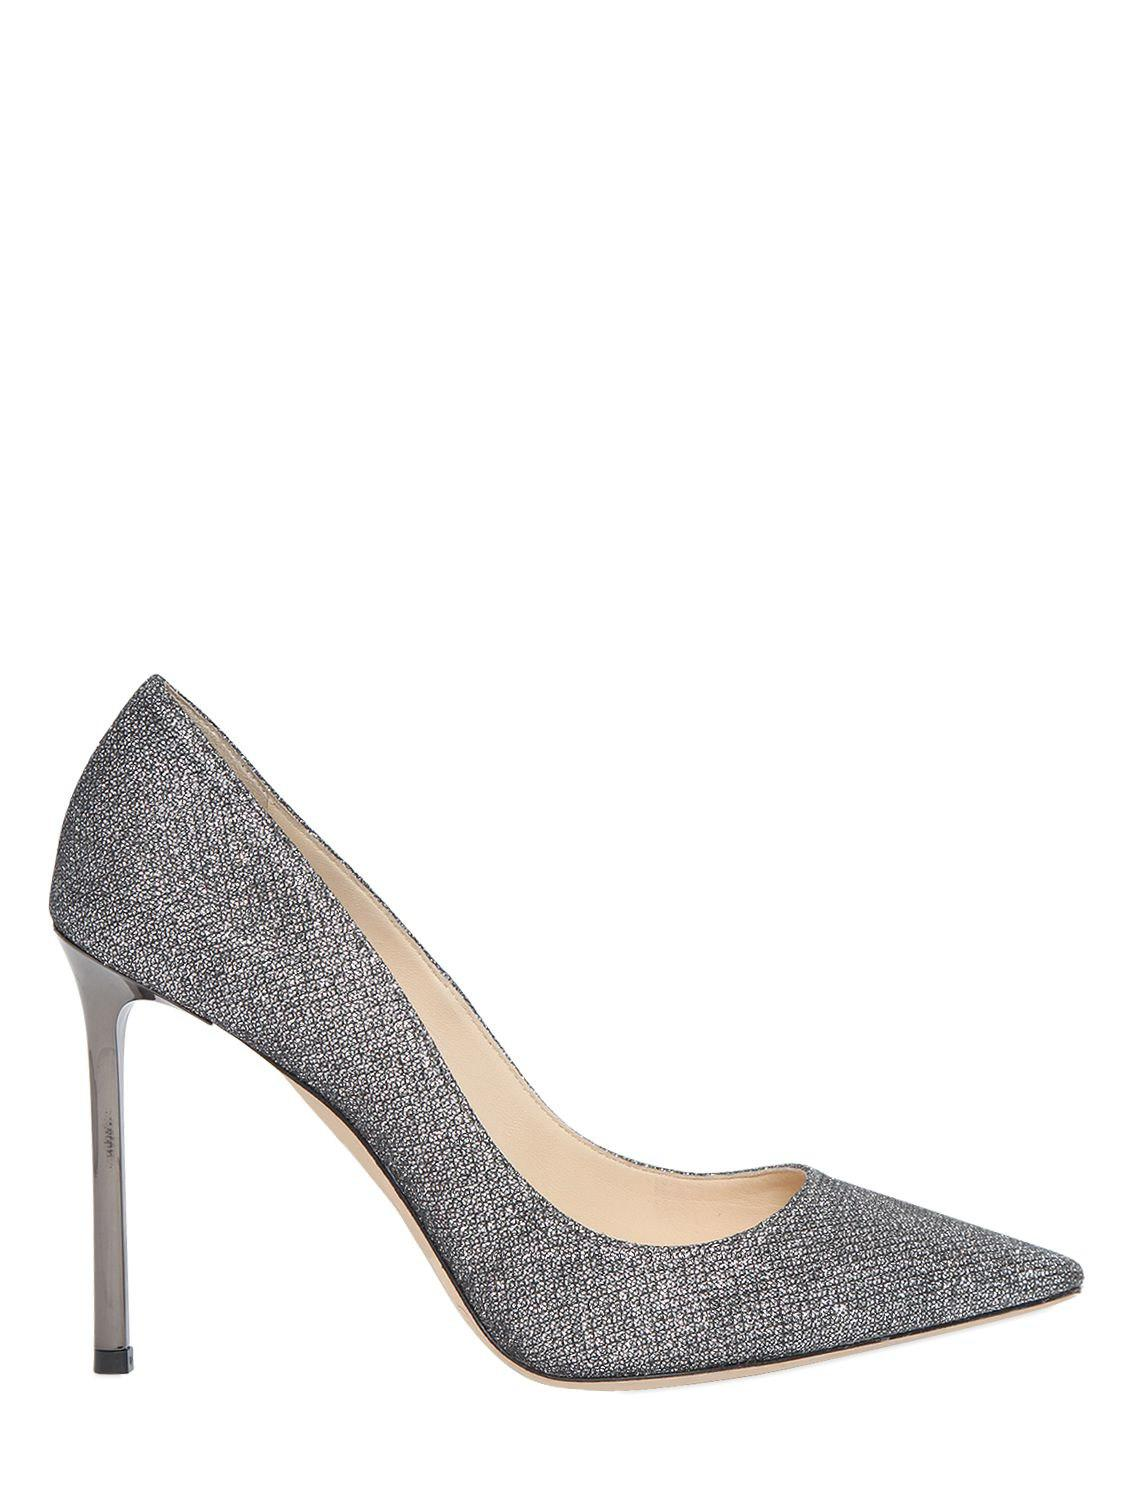 Jimmy choo 100MM ROMY GLITTERED FABRIC PUMPS IYgmWTT6